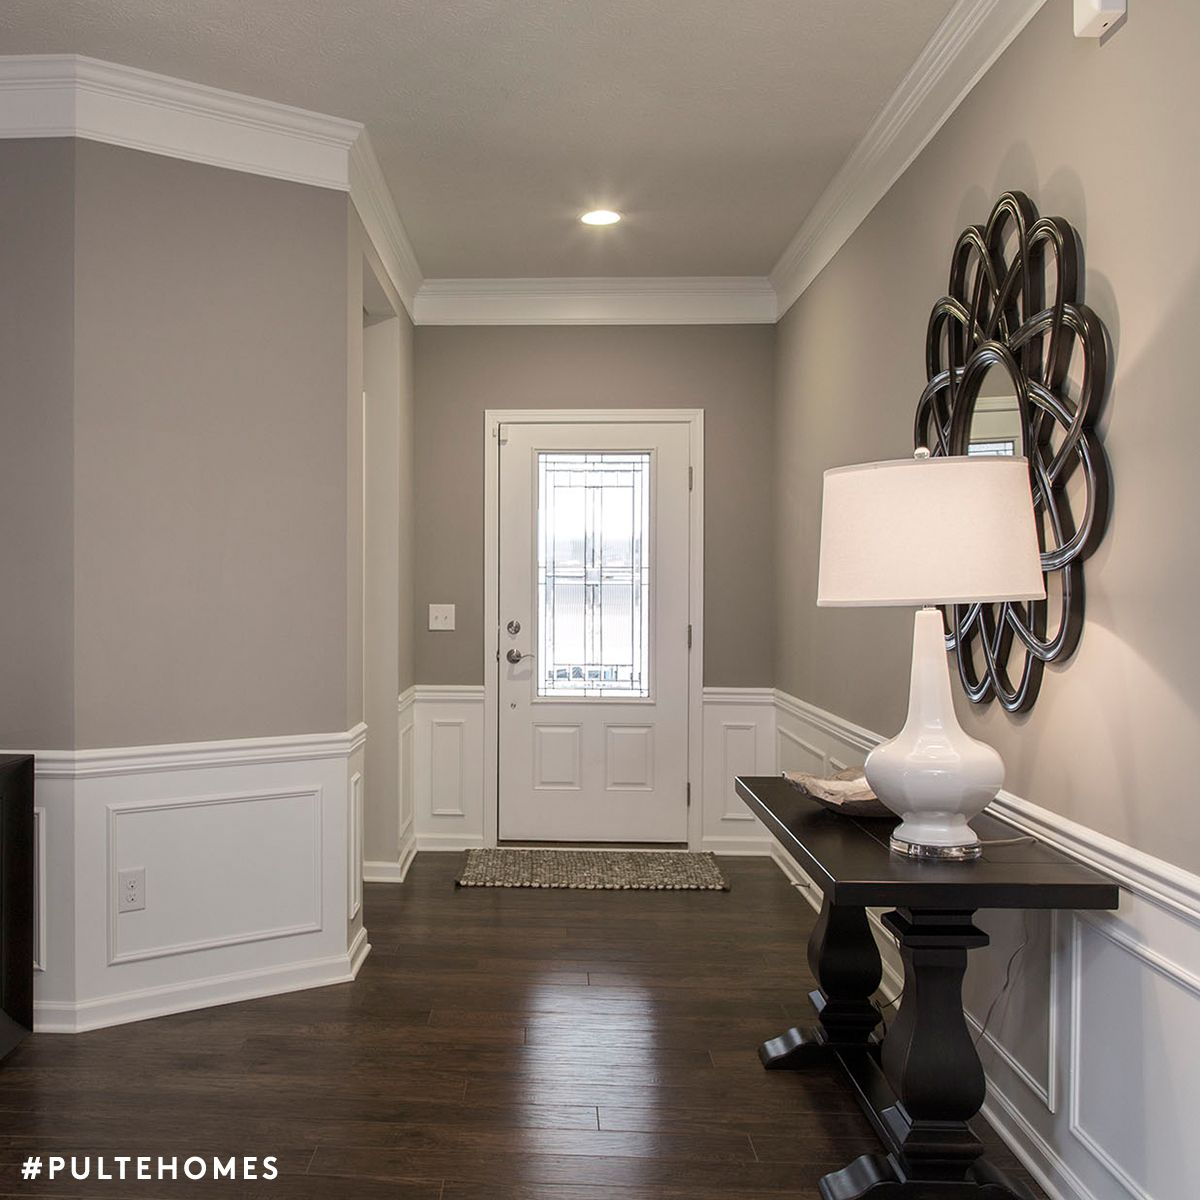 Ideal Interiors Working With Light Grey Paint: Sherwin Williams Mindful Gray: Color Spotlight